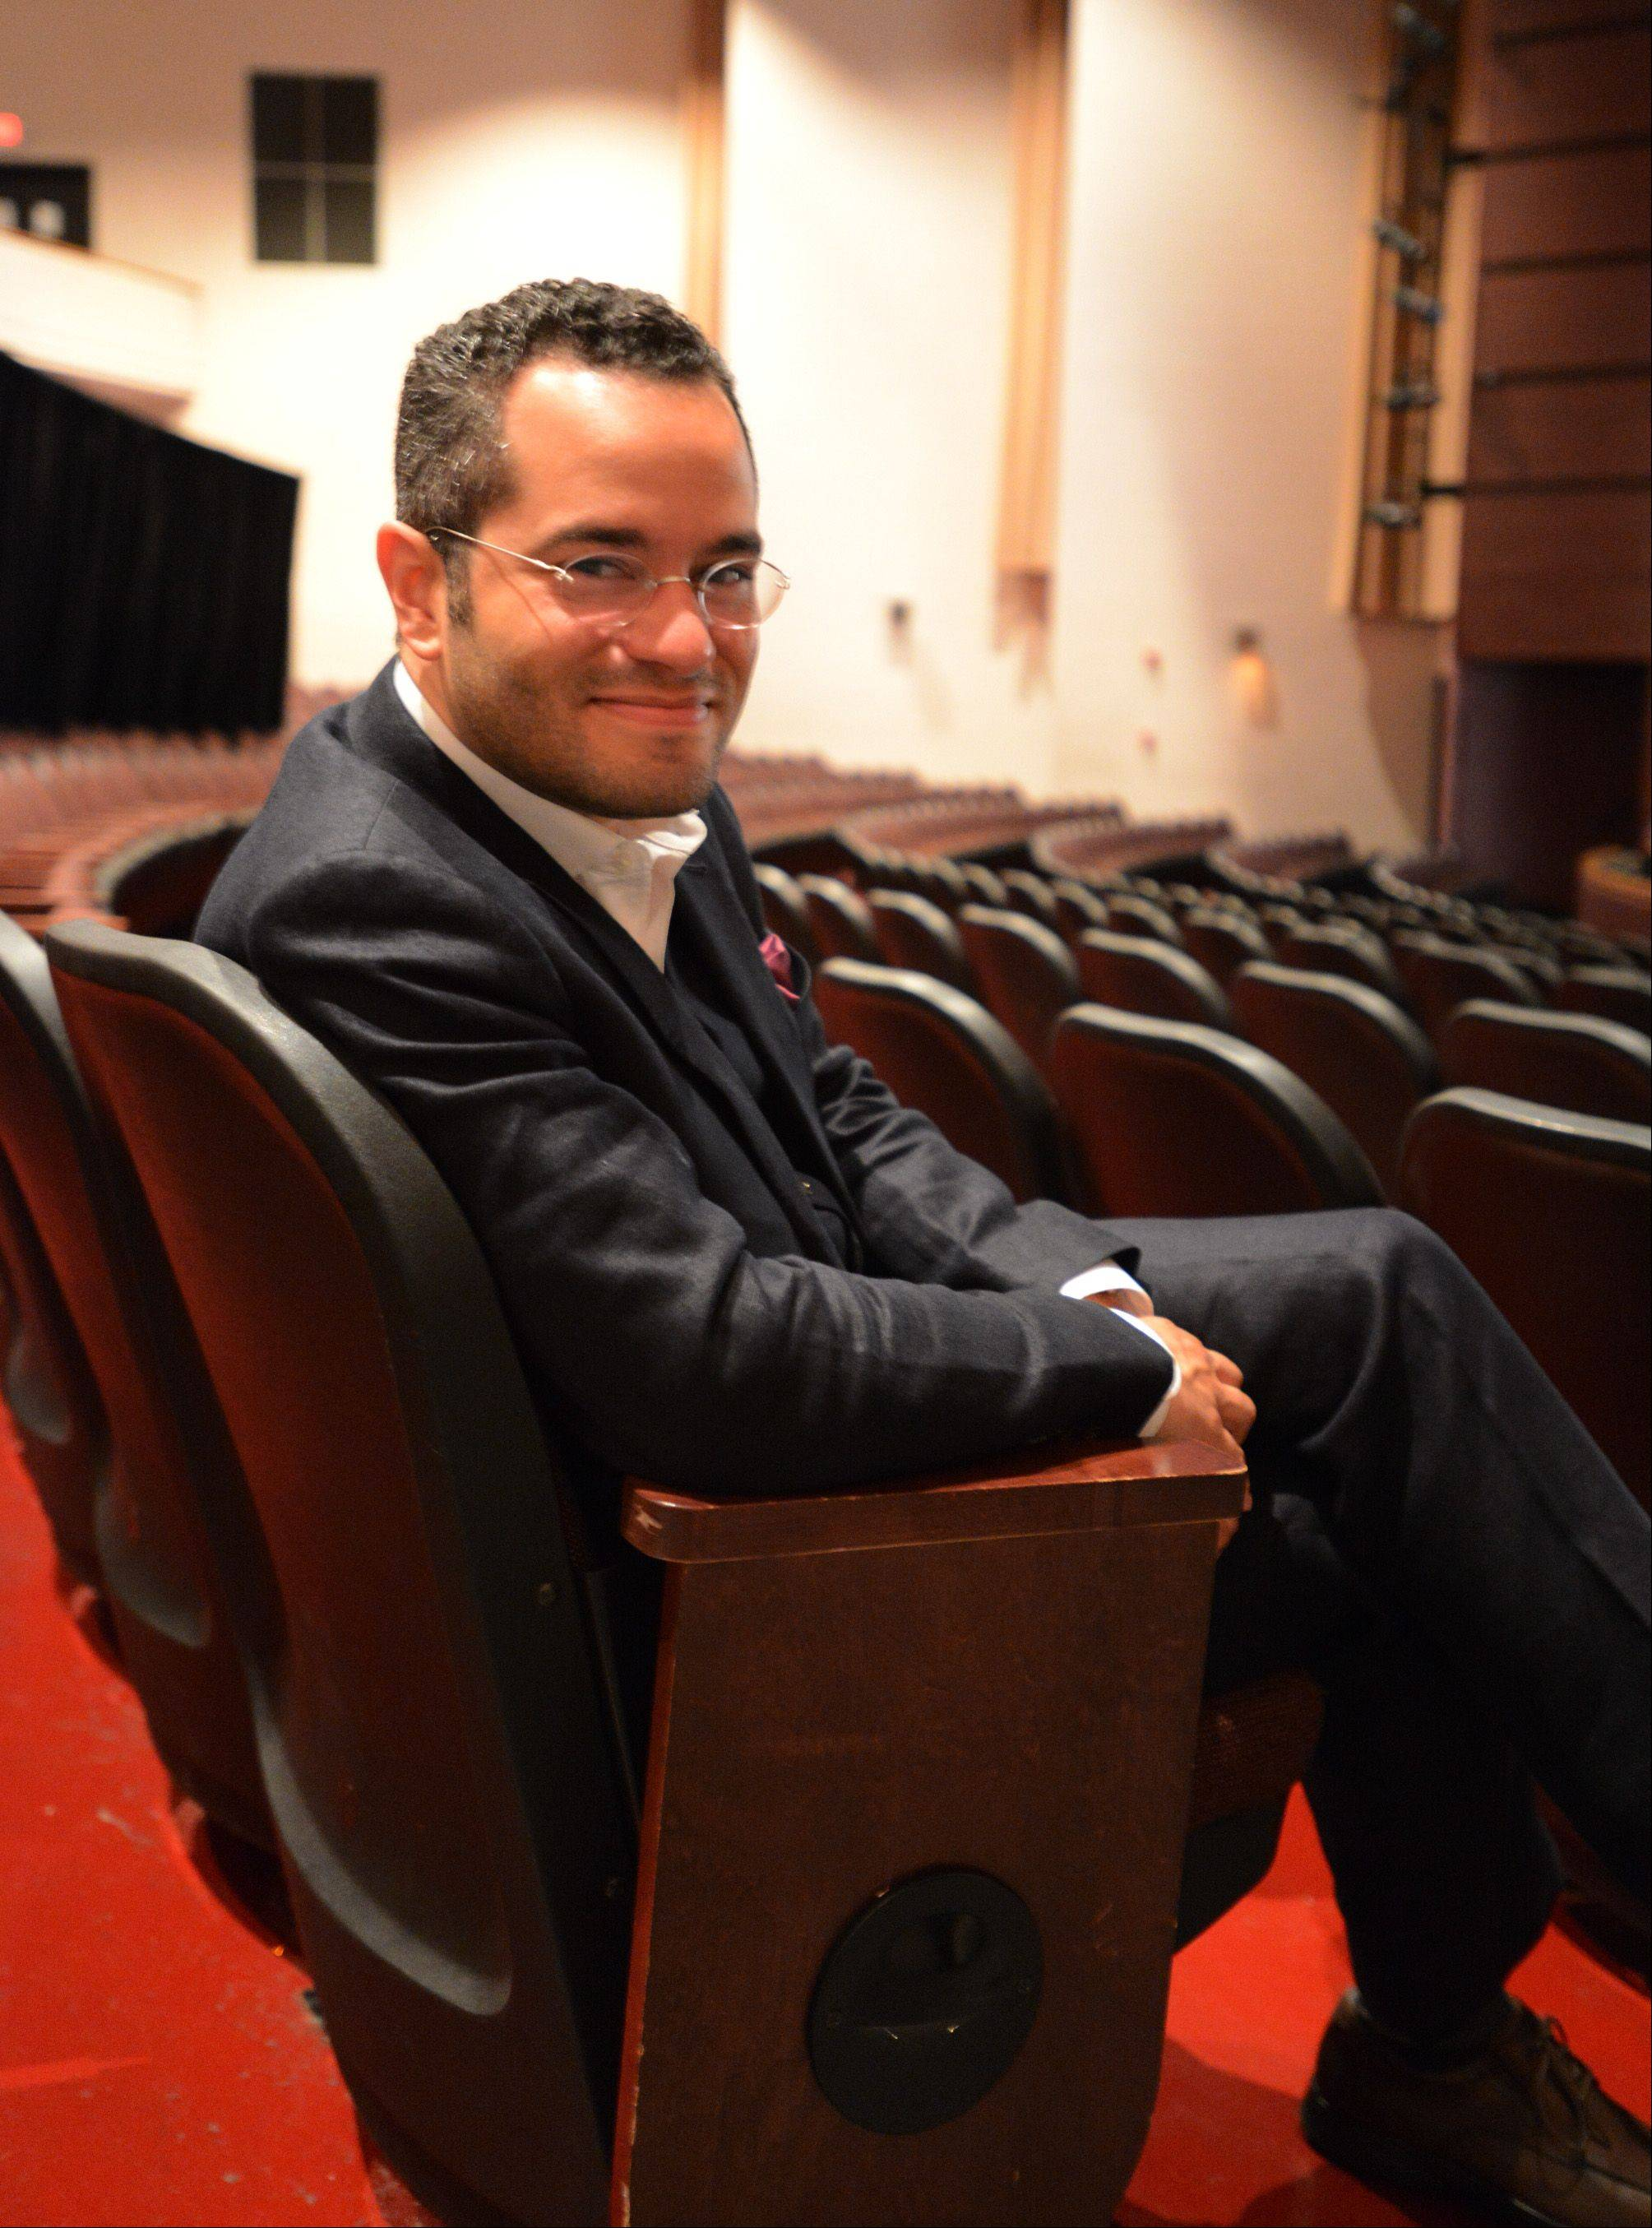 Andrew Grams, pictured in the auditorium of the Hemmens Cultural Center in Elgin, makes his debut as the new conductor for the Elgin Symphony Orchestra on Saturday night.